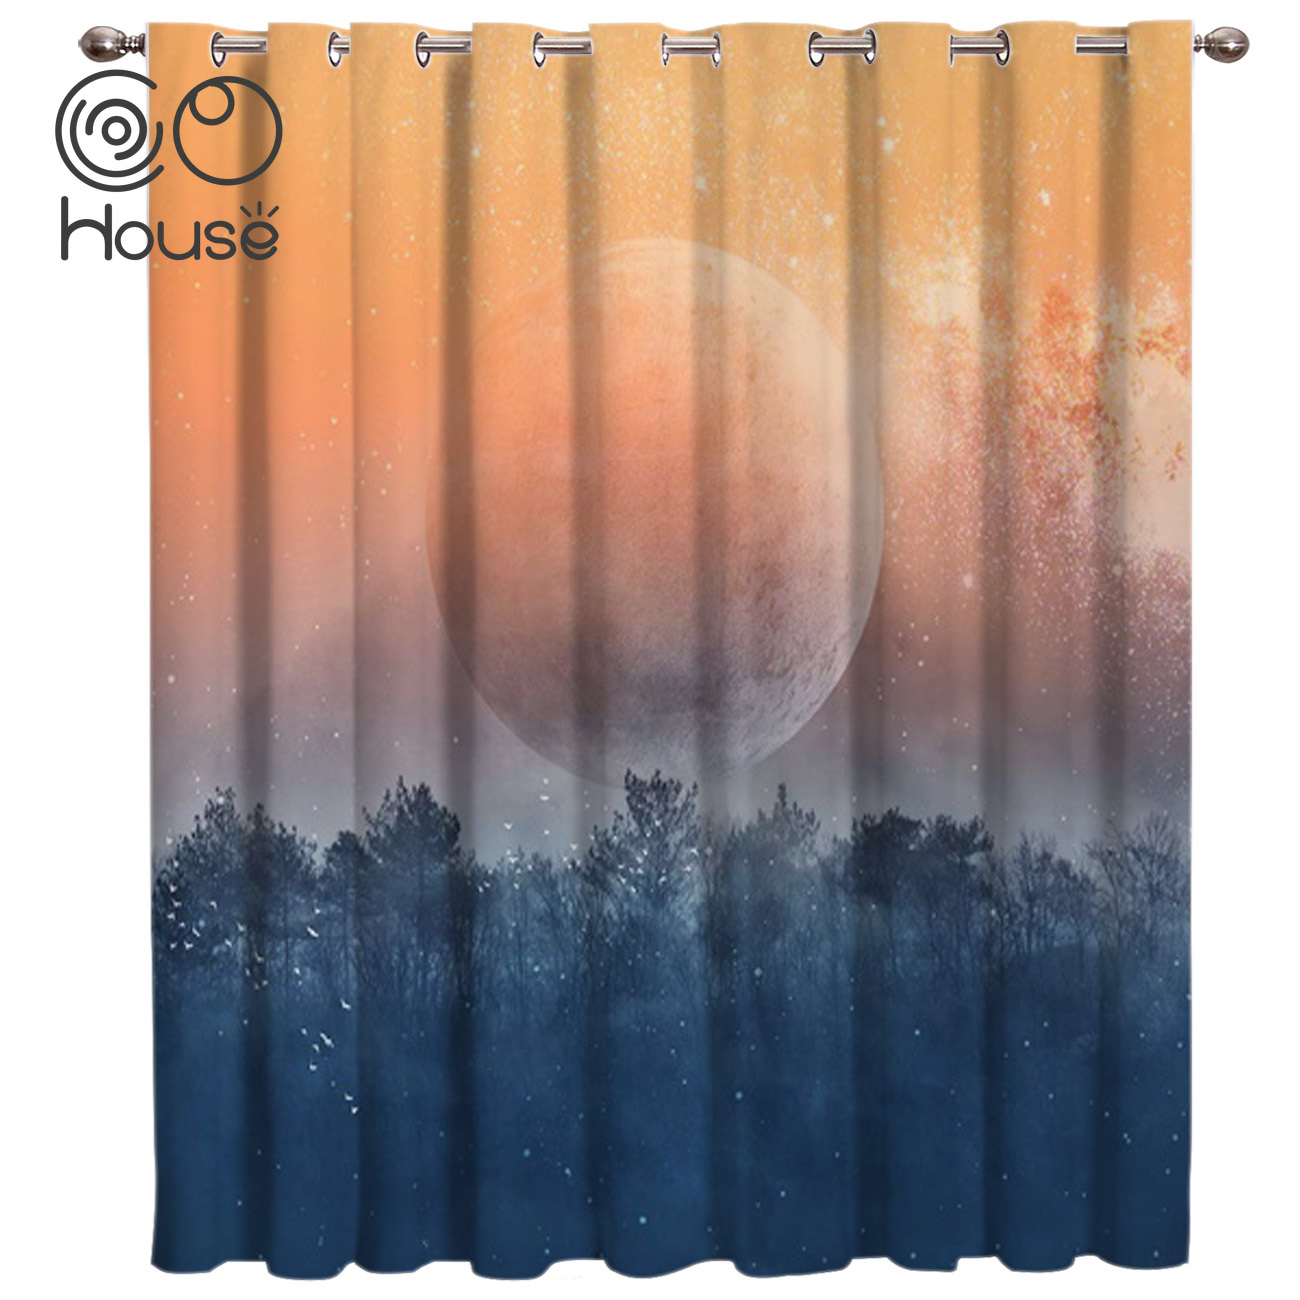 CoCoHouse Sunset Forest Planet Window Treatments Curtains Valance Window Curtains Dark Living Room Blackout Bedroom Decor Window